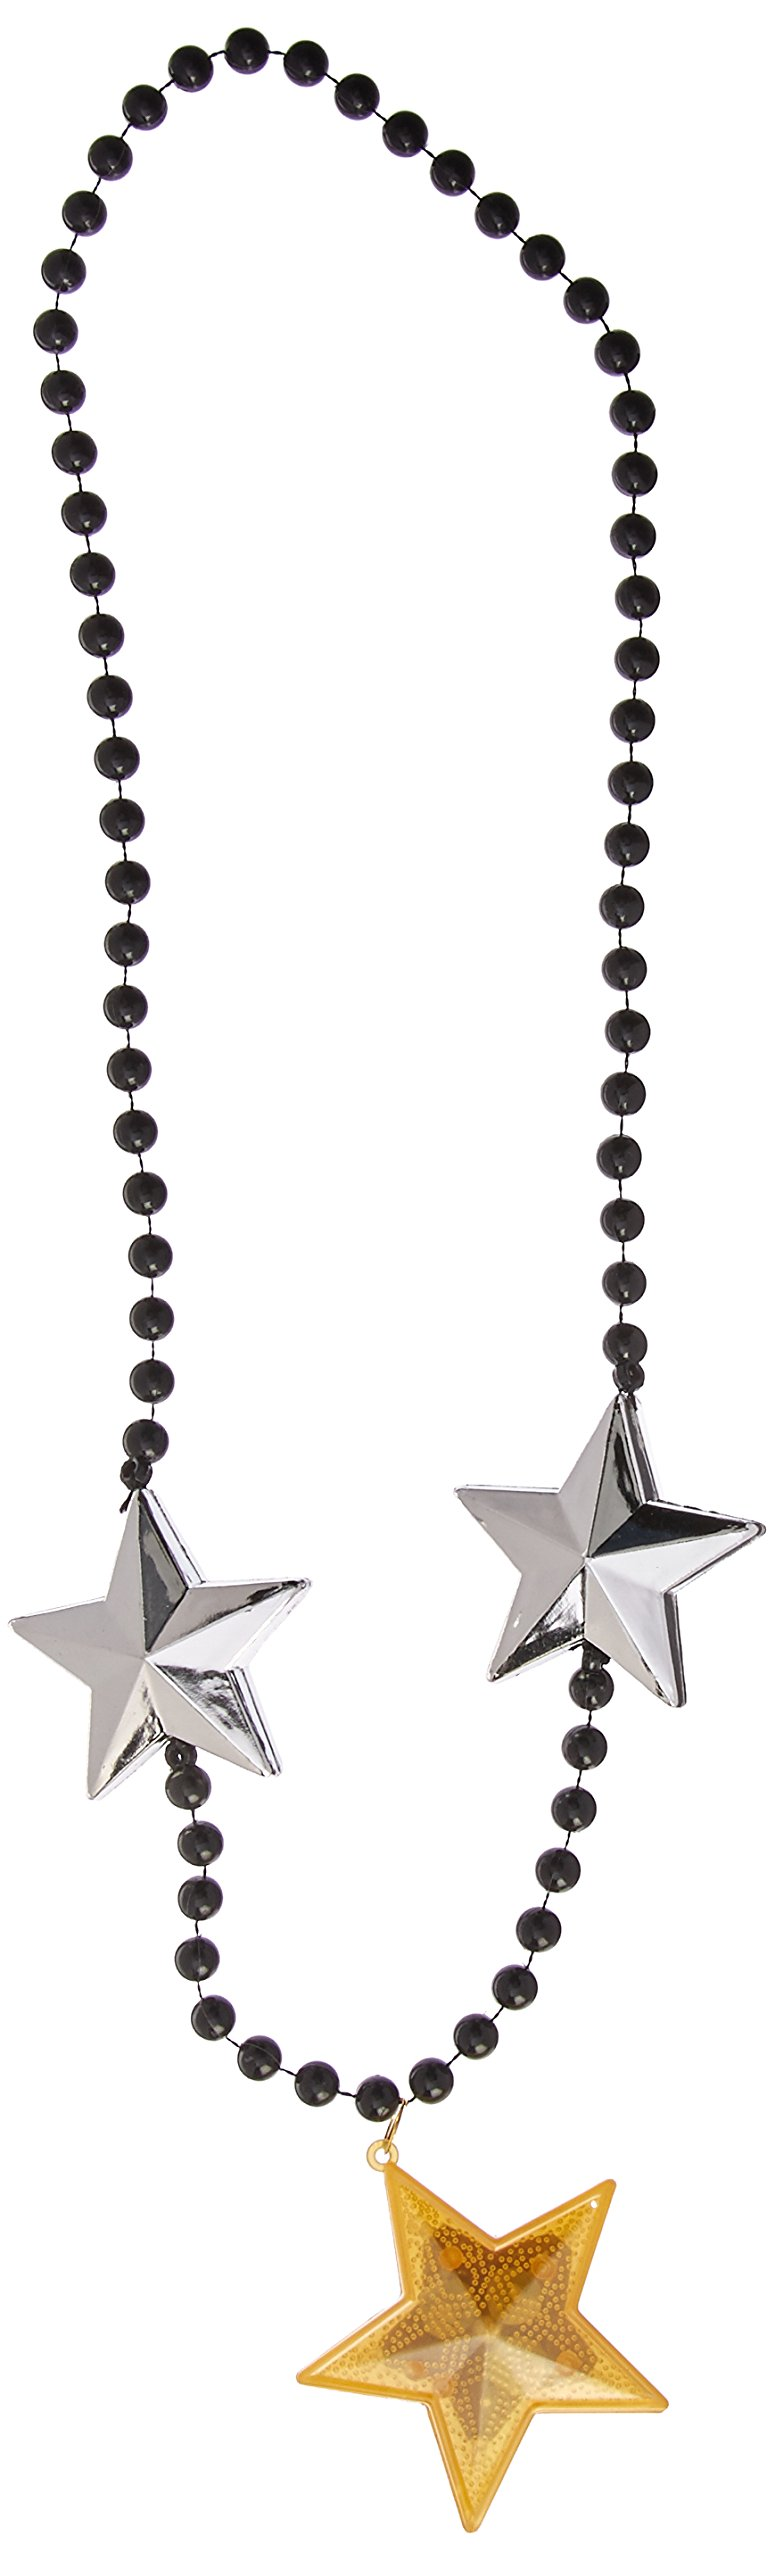 Amscan Jumbo Bead Party Necklaces with Light-Up Stars, 40'', 6 Ct.